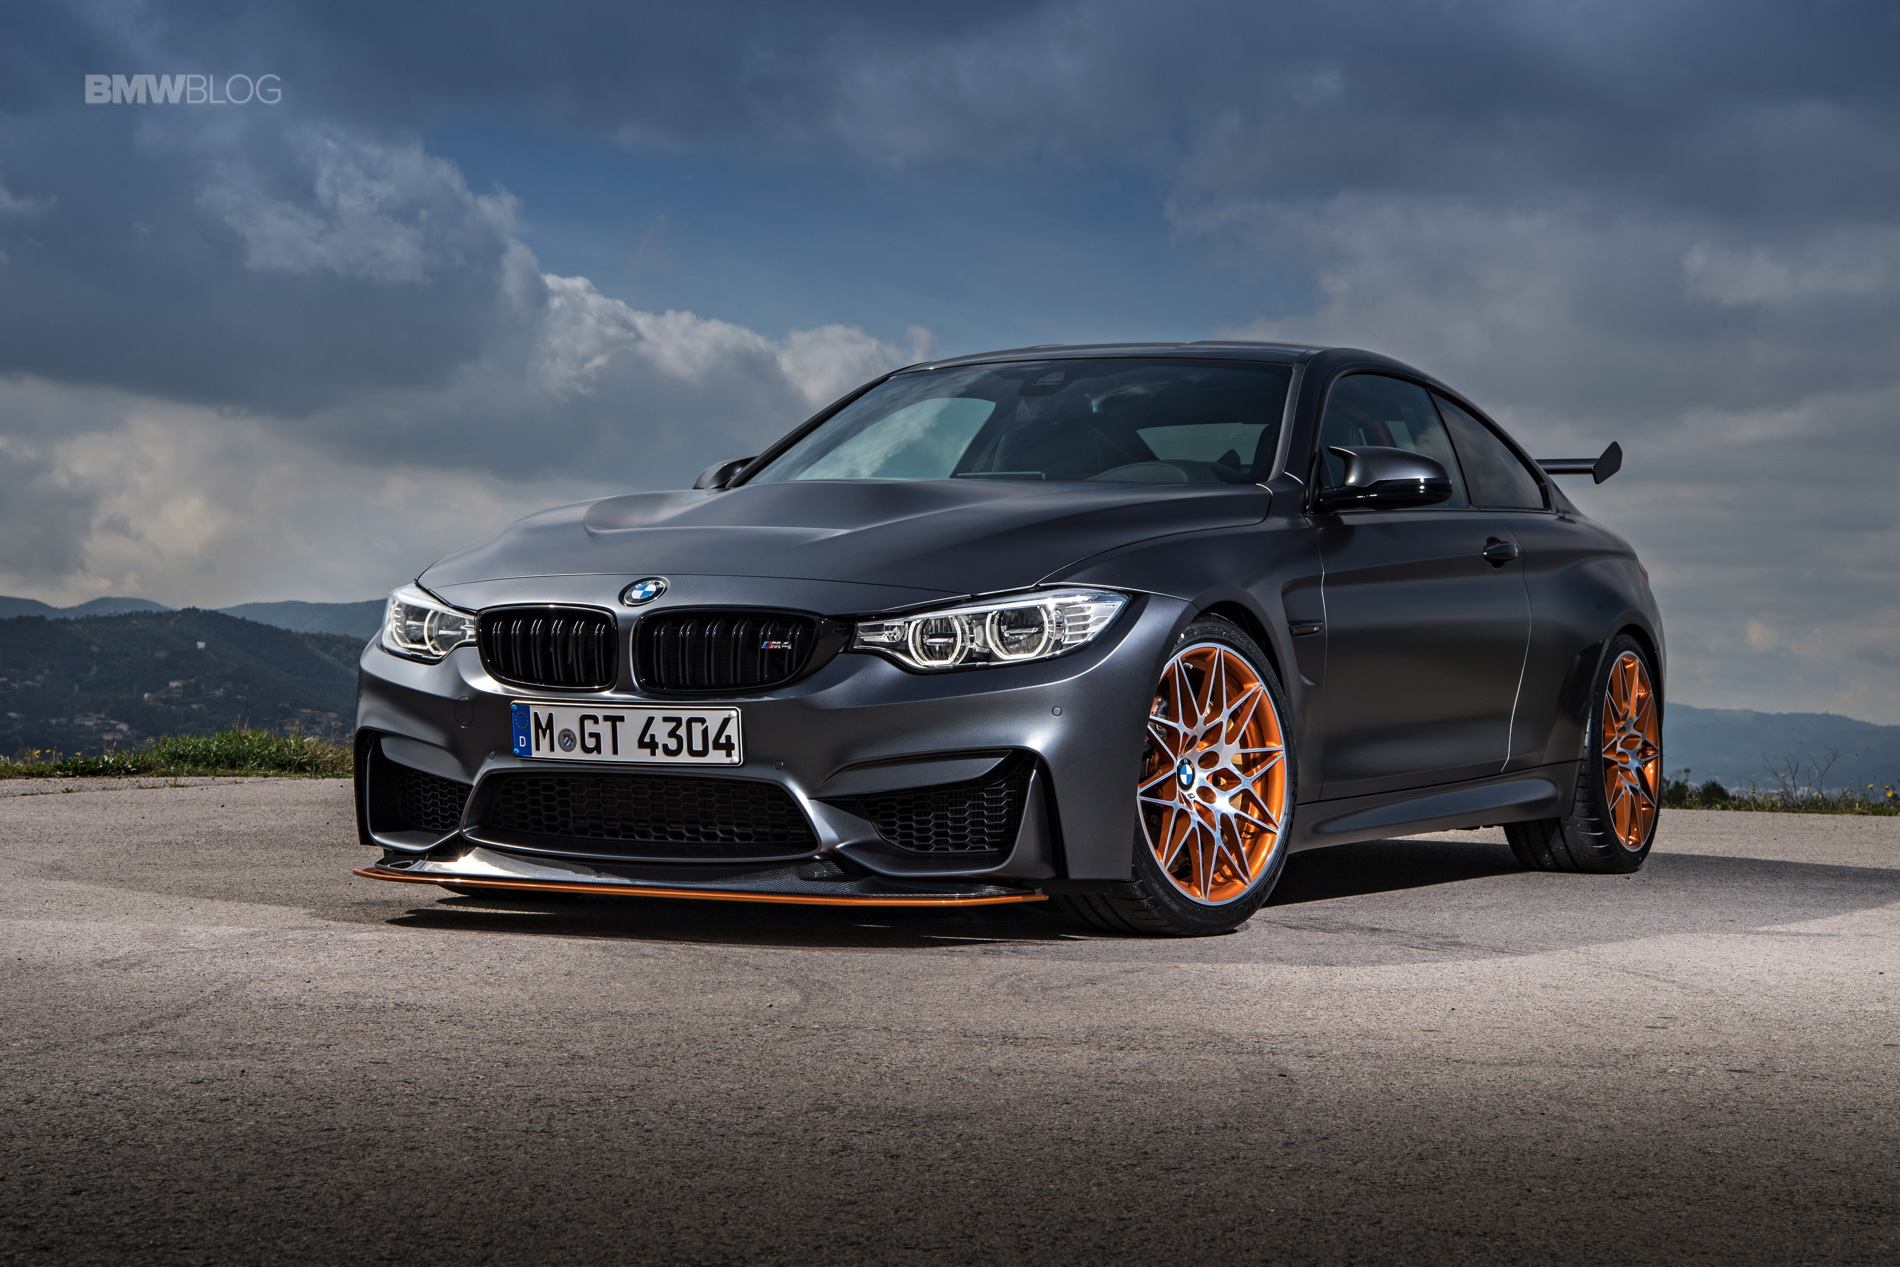 Bmw Wallpapers Vehicles Hq Bmw Pictures 4k Wallpapers 2019